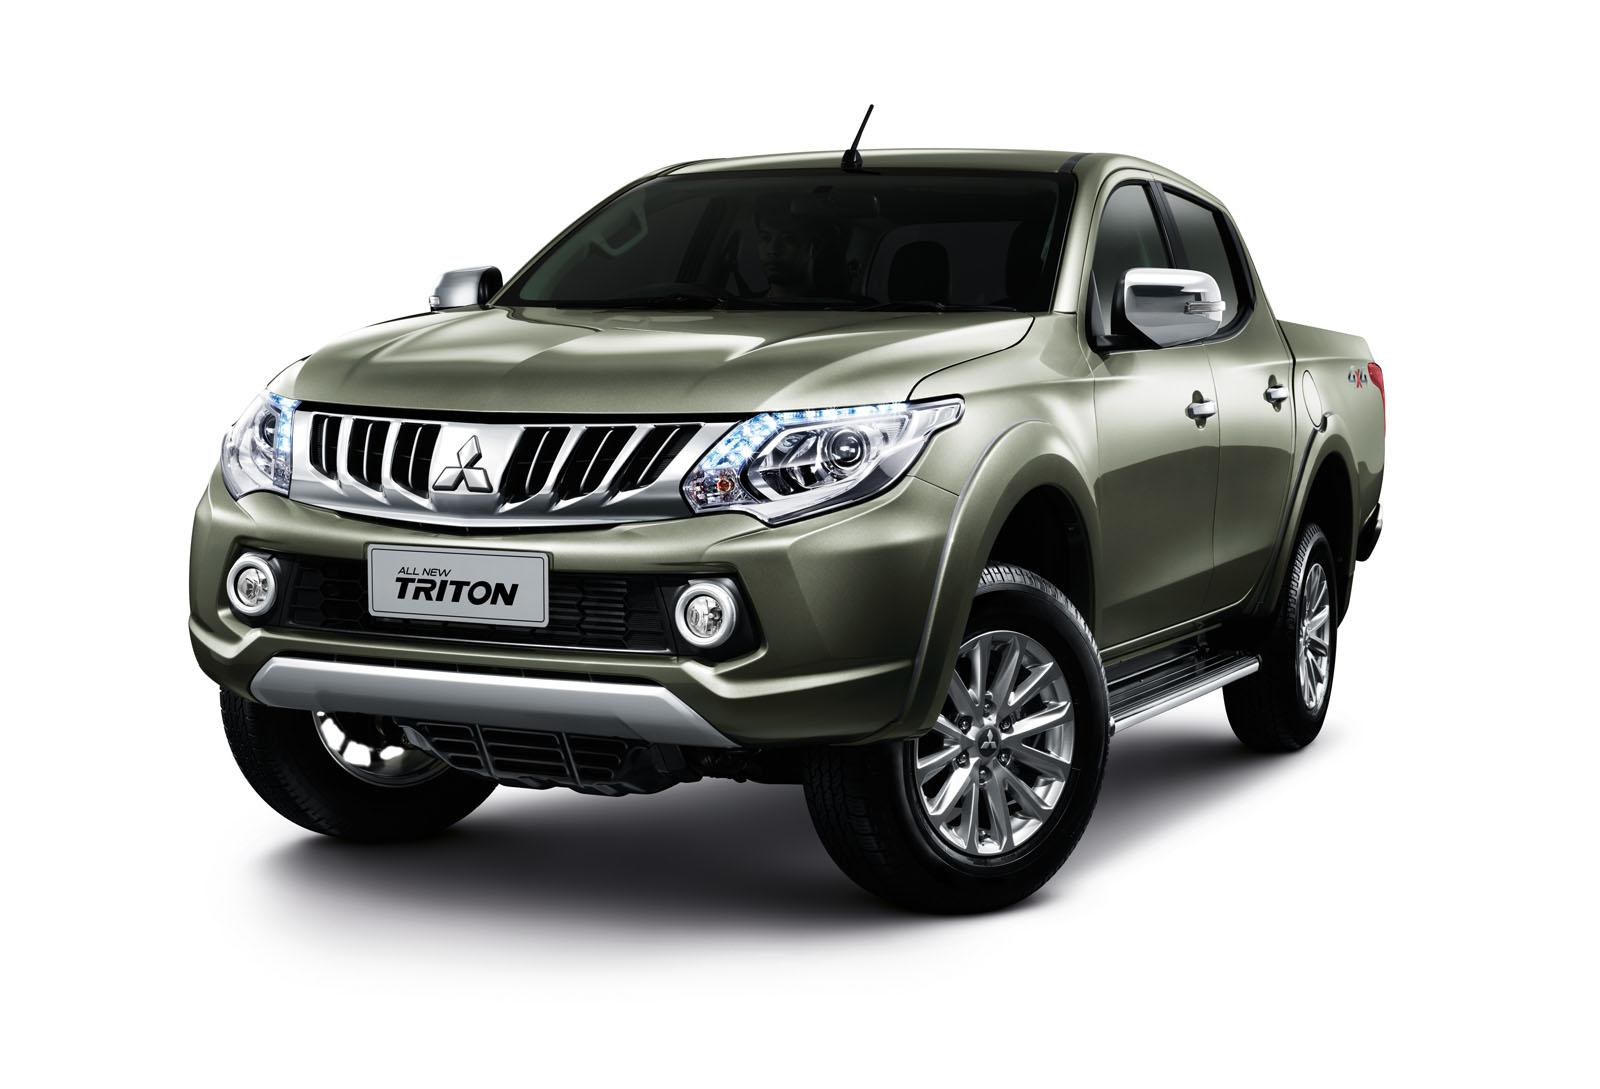 2015 mitsubishi triton l200 debuts in thailand video autoevolution. Black Bedroom Furniture Sets. Home Design Ideas